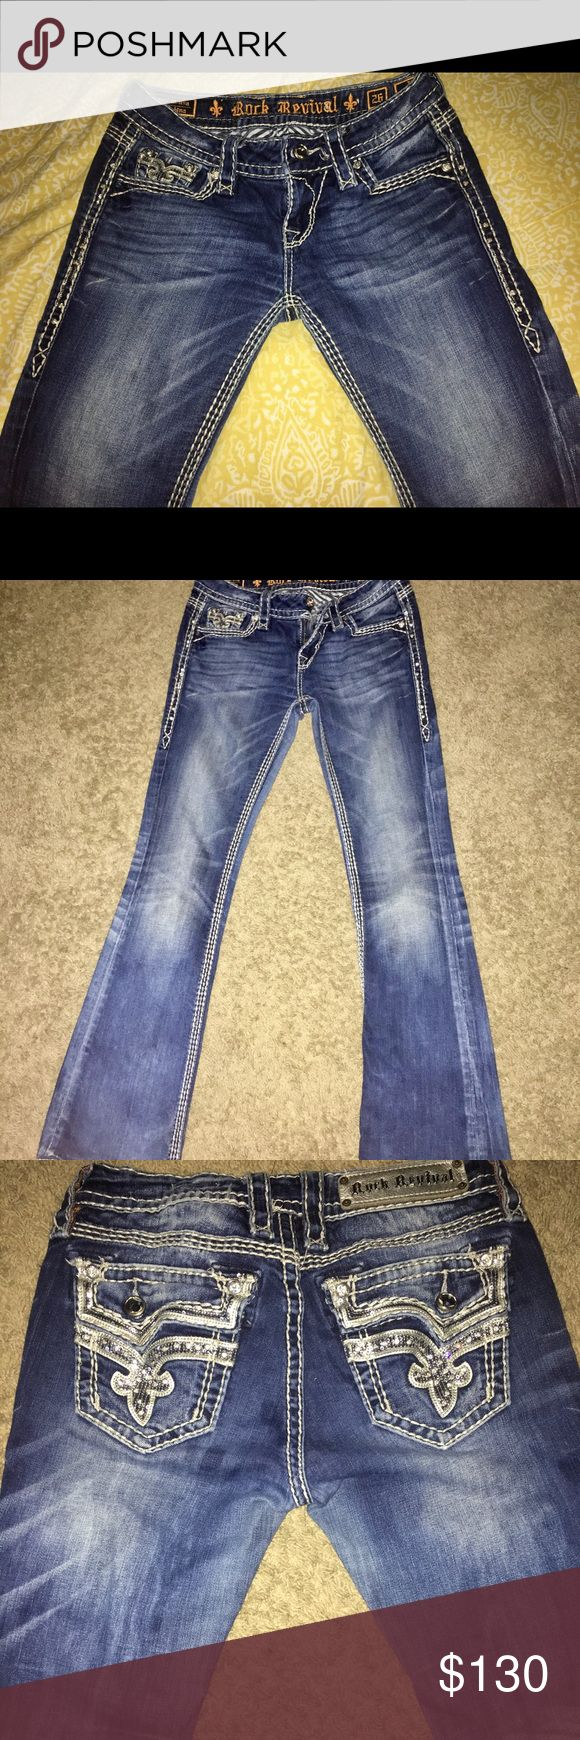 Rock Revival jeans Rock Revival women's jeans, medium wash, boot cut, rhinestone front & back. Only worn a couple times, no rips, excellent condition. 29 inch inseam! Great buy! Rock Revival Jeans Boot Cut